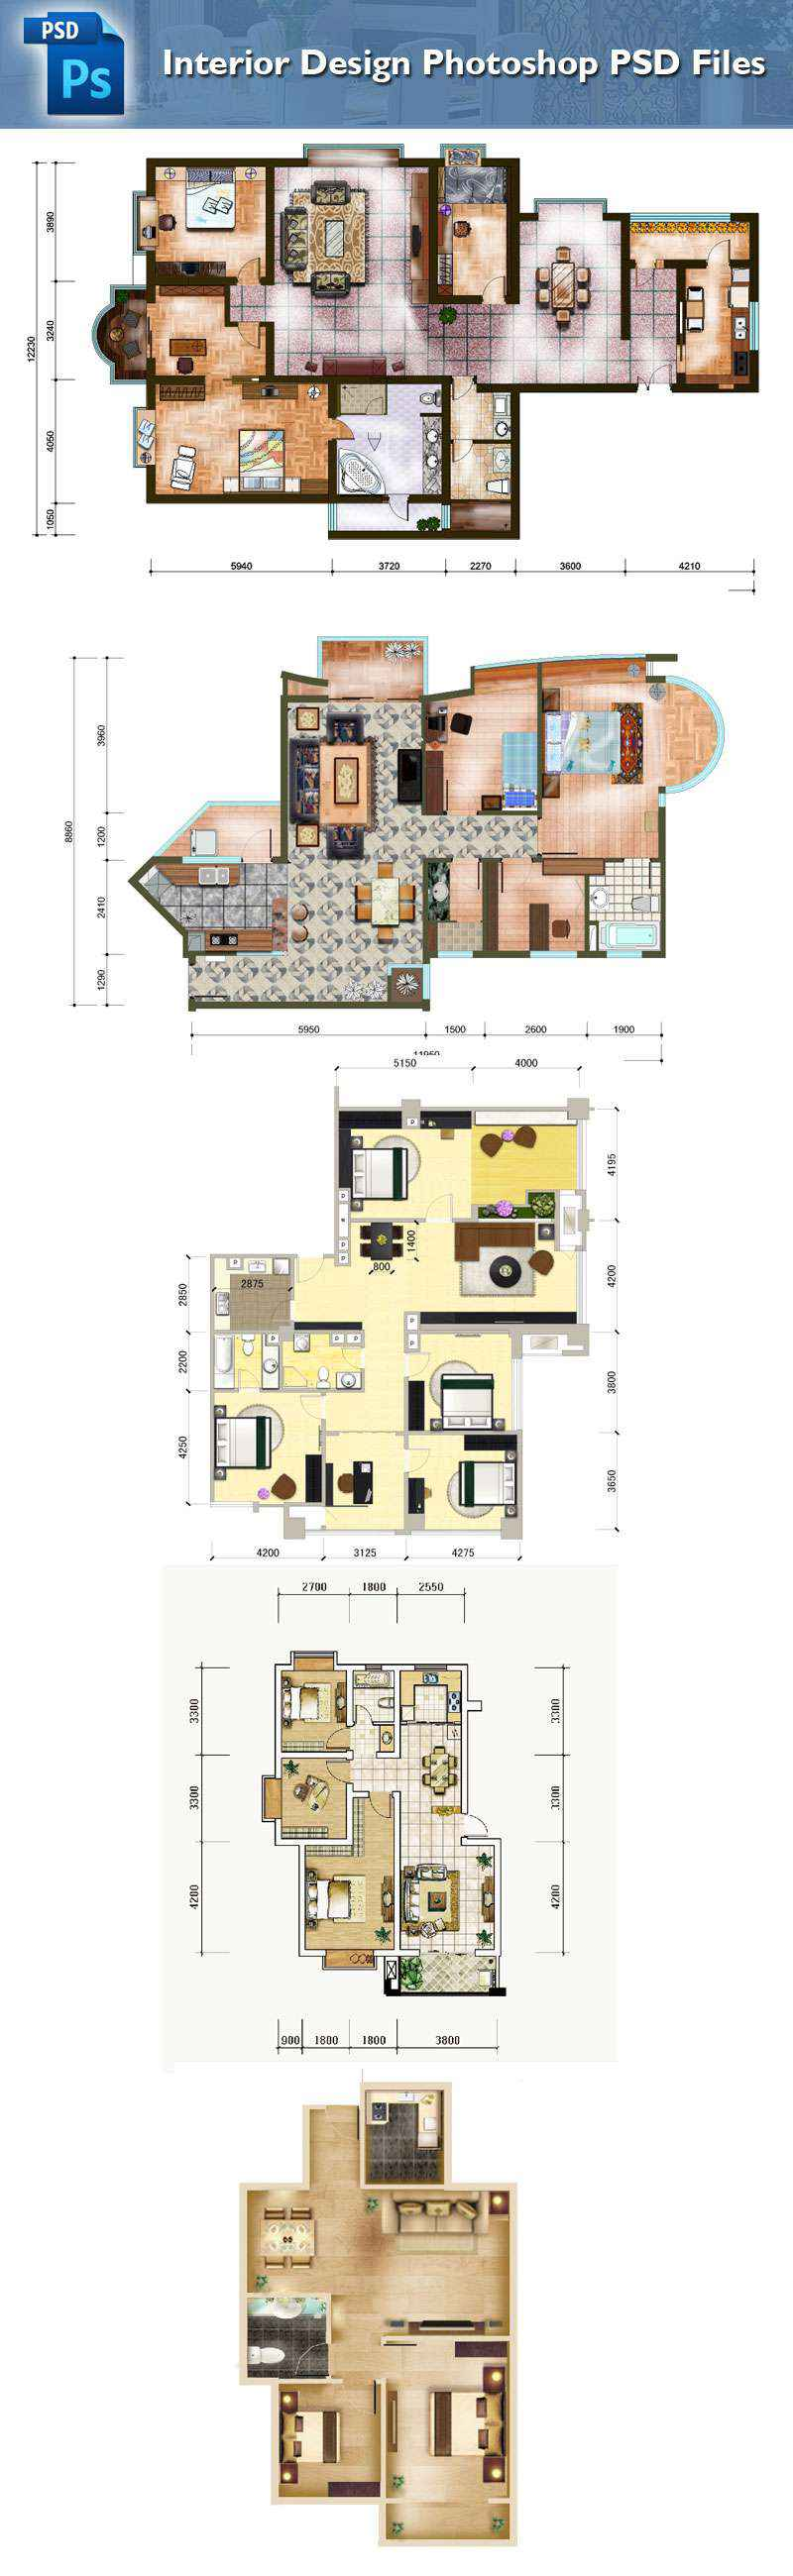 15 Types of Interior Design Layouts Photoshop PSD Template ...